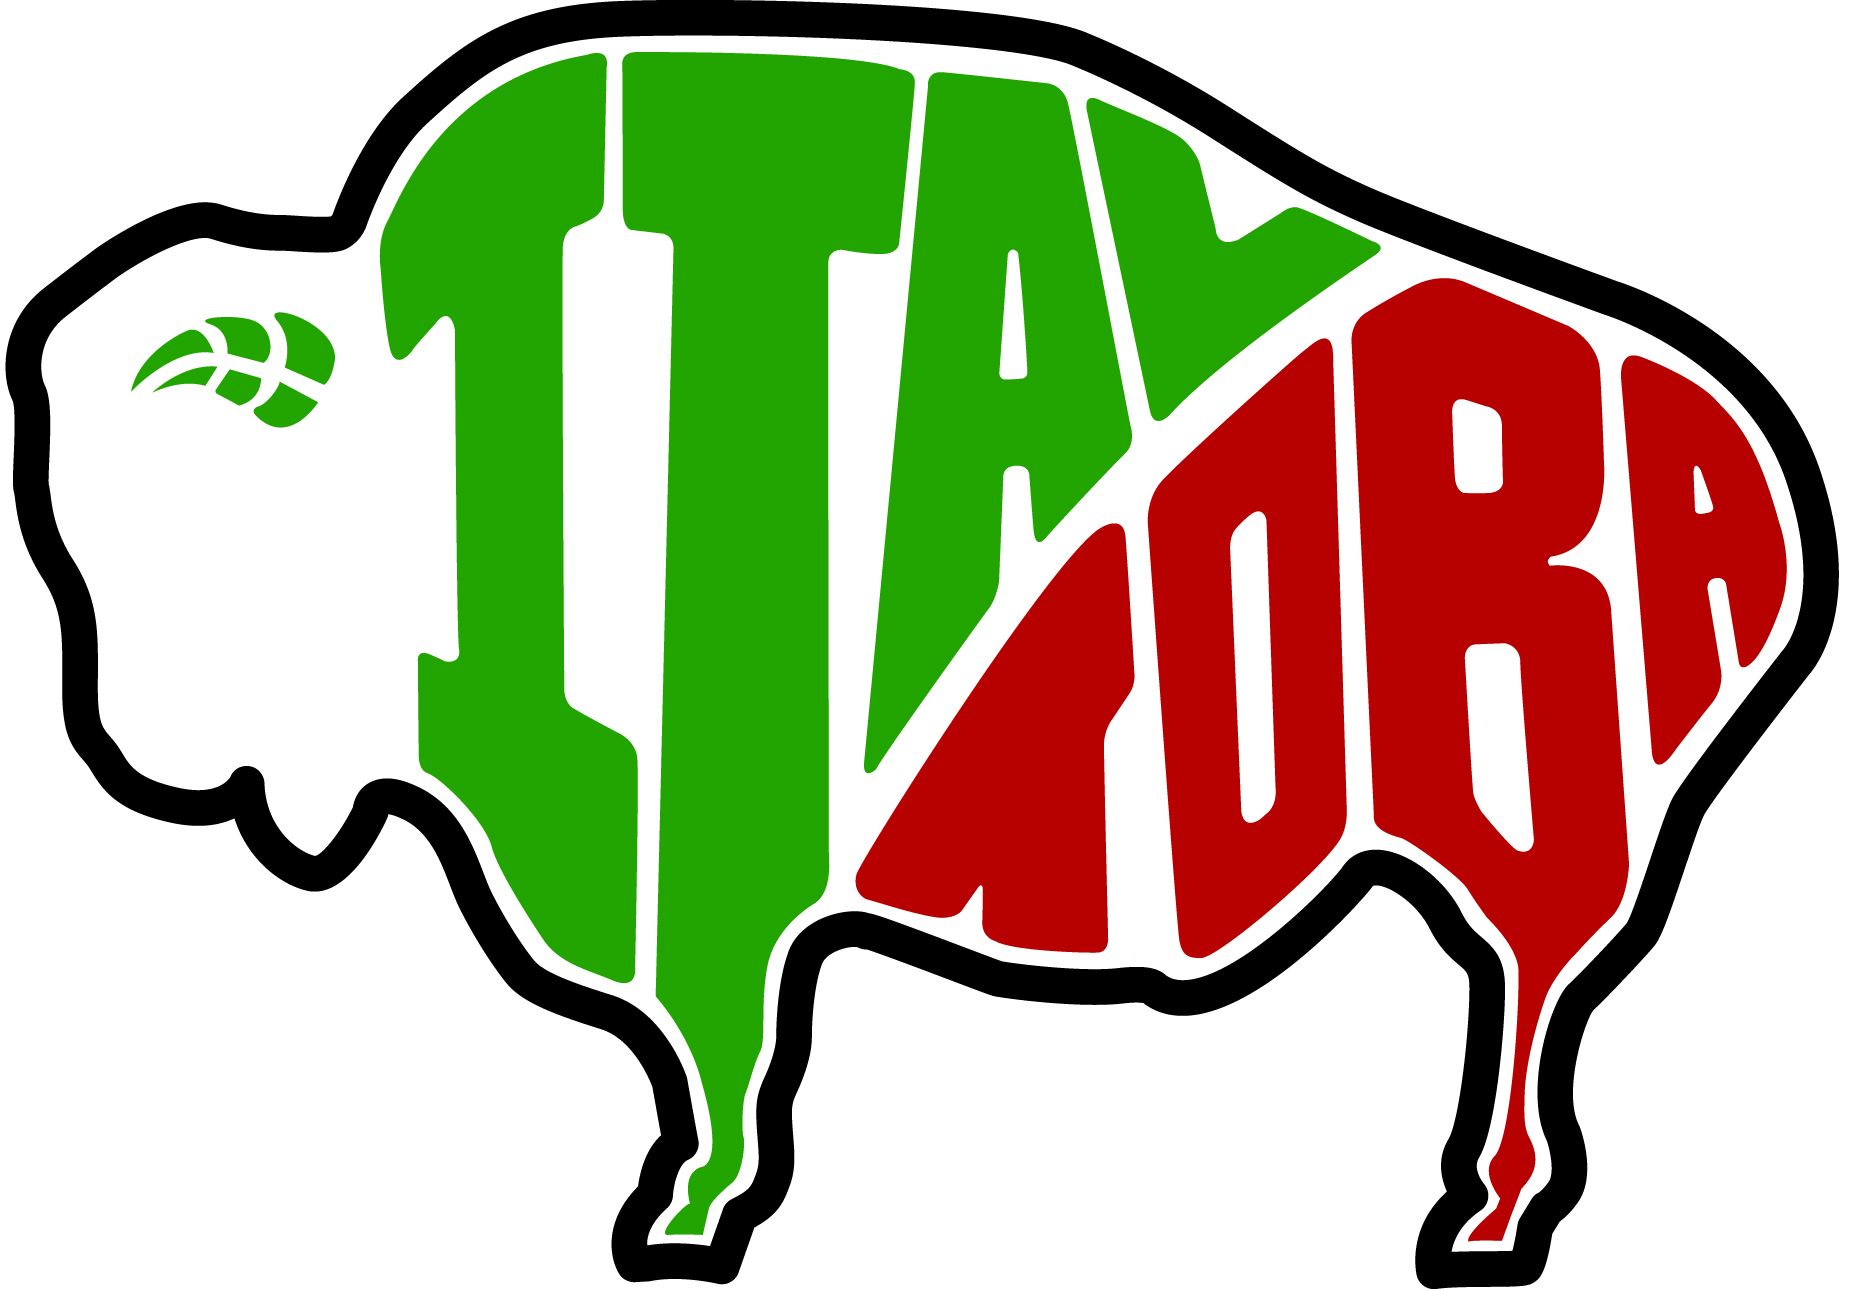 Project ITALTOBA LOGO_red green white black_Final